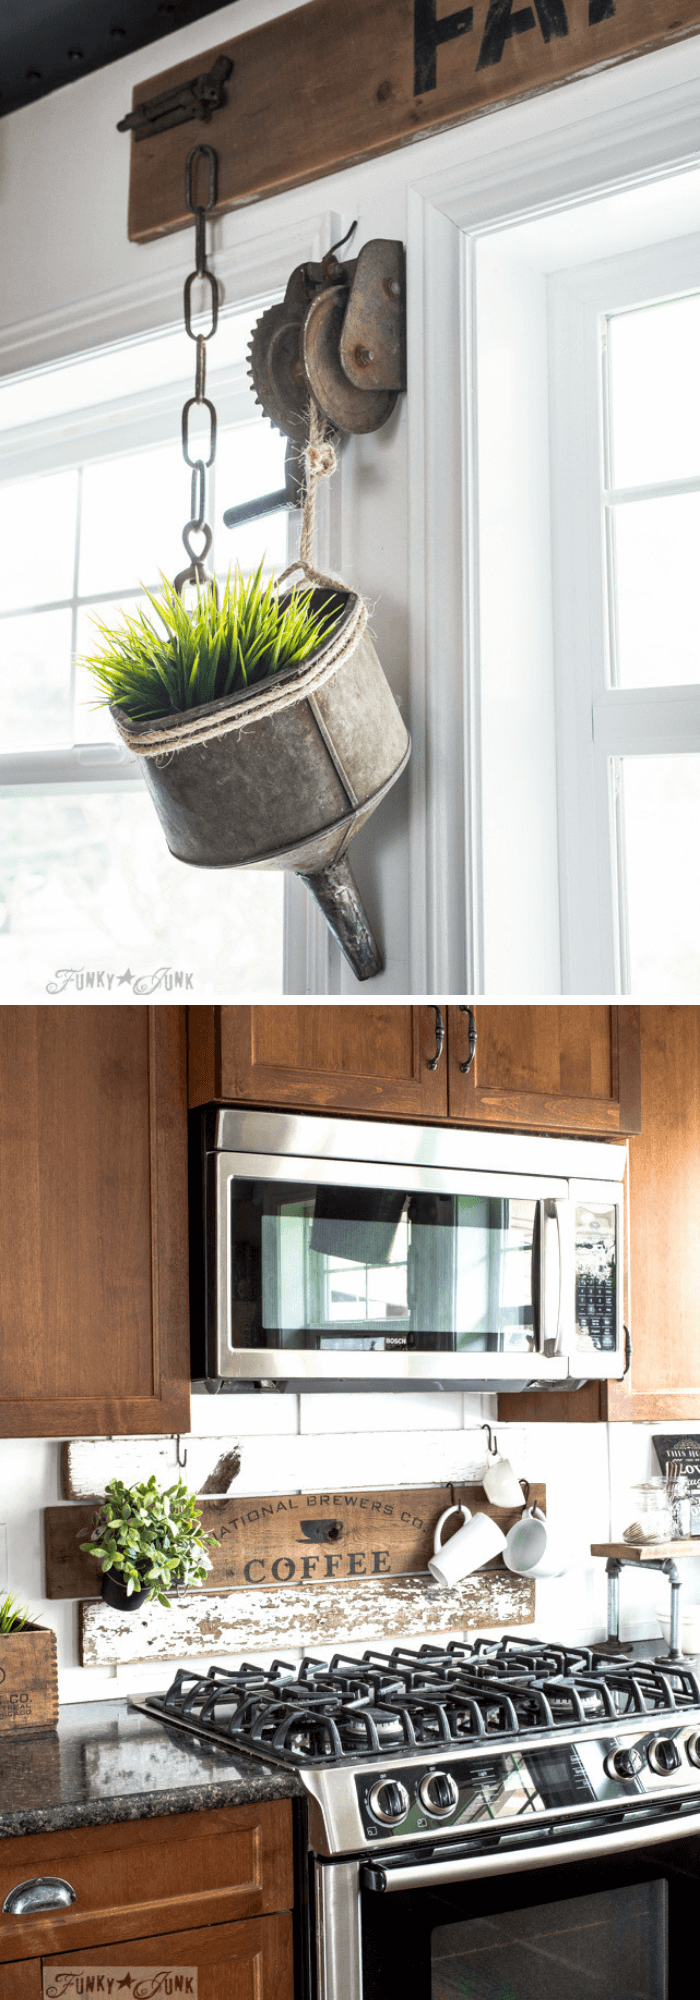 Old funnel plant hanger | Best Farmhouse Indoor Plant Decor Ideas & Designs